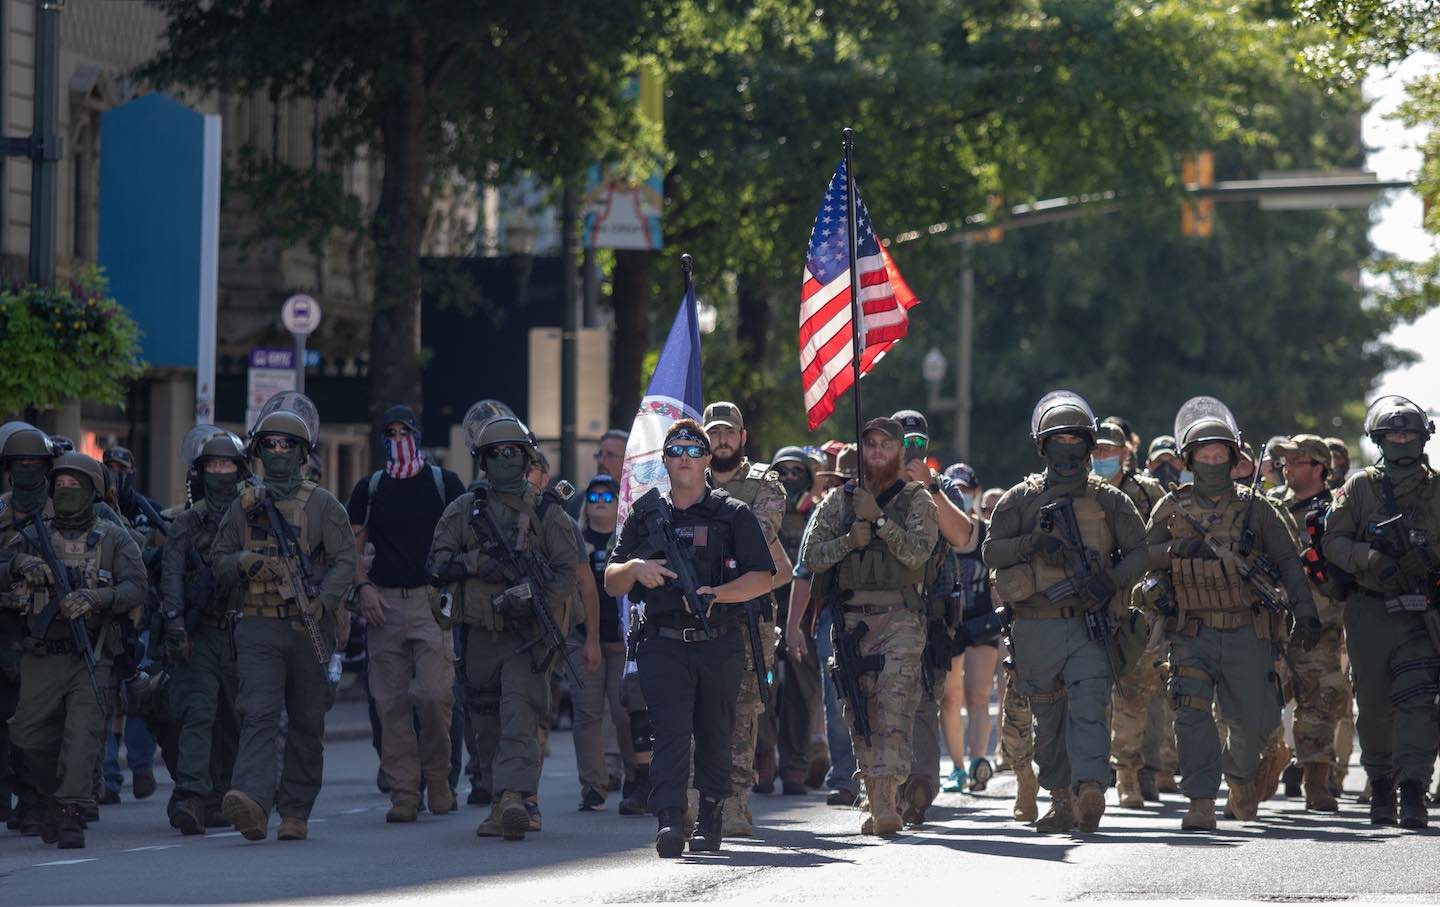 Armed gun rights protesters march down Broad Street.